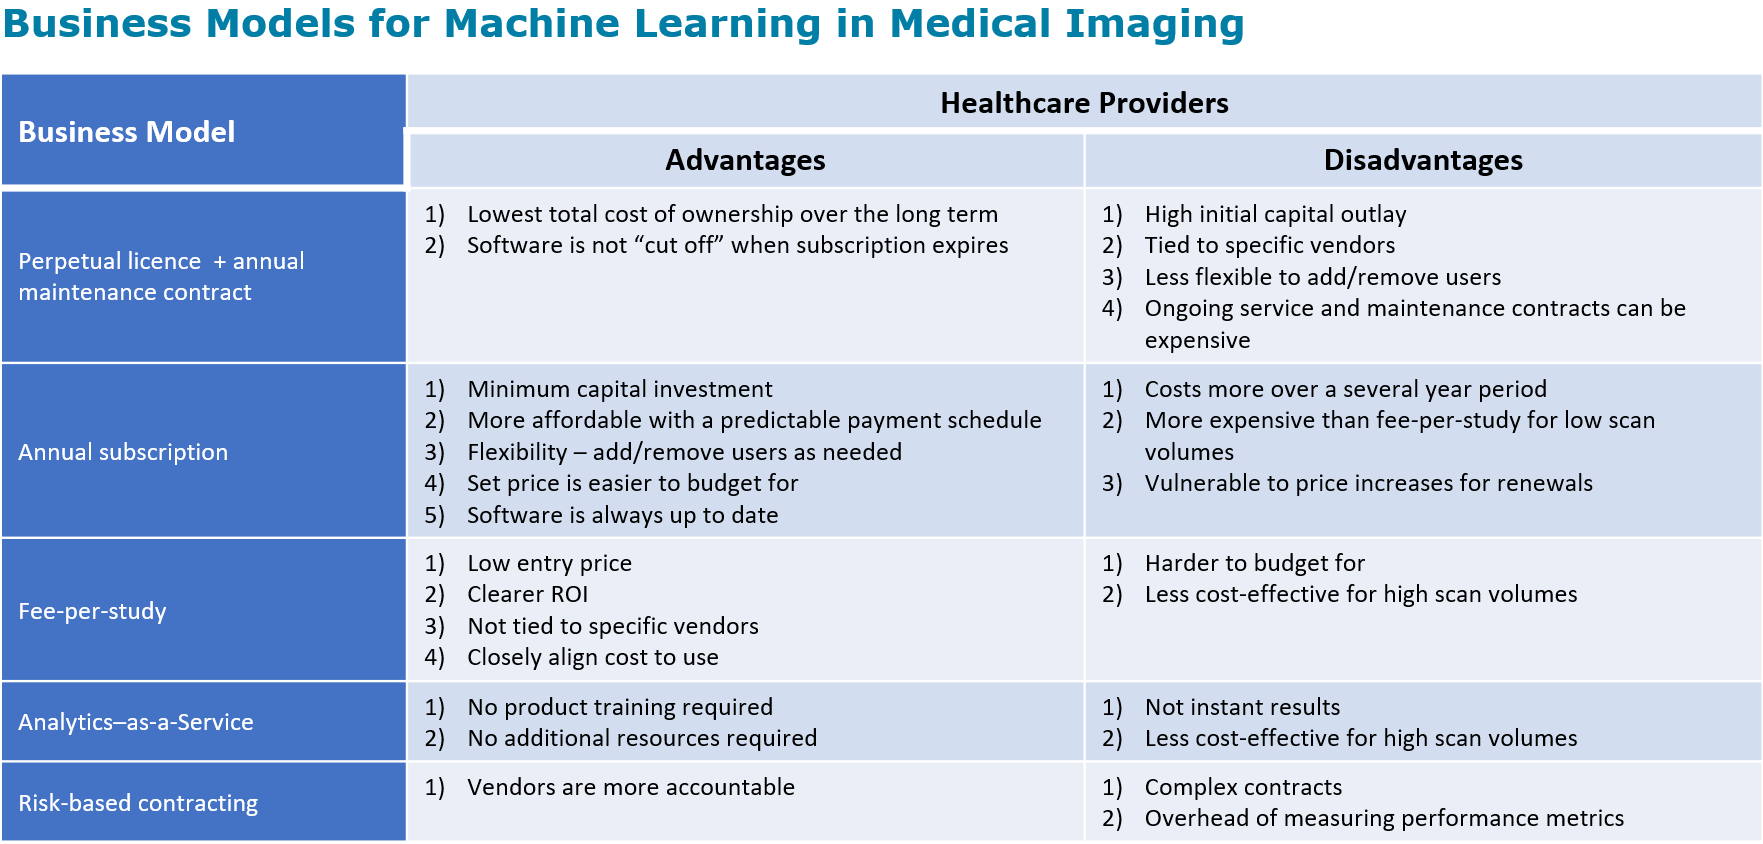 Business Models for AI in Medical Imaging - Signify Research